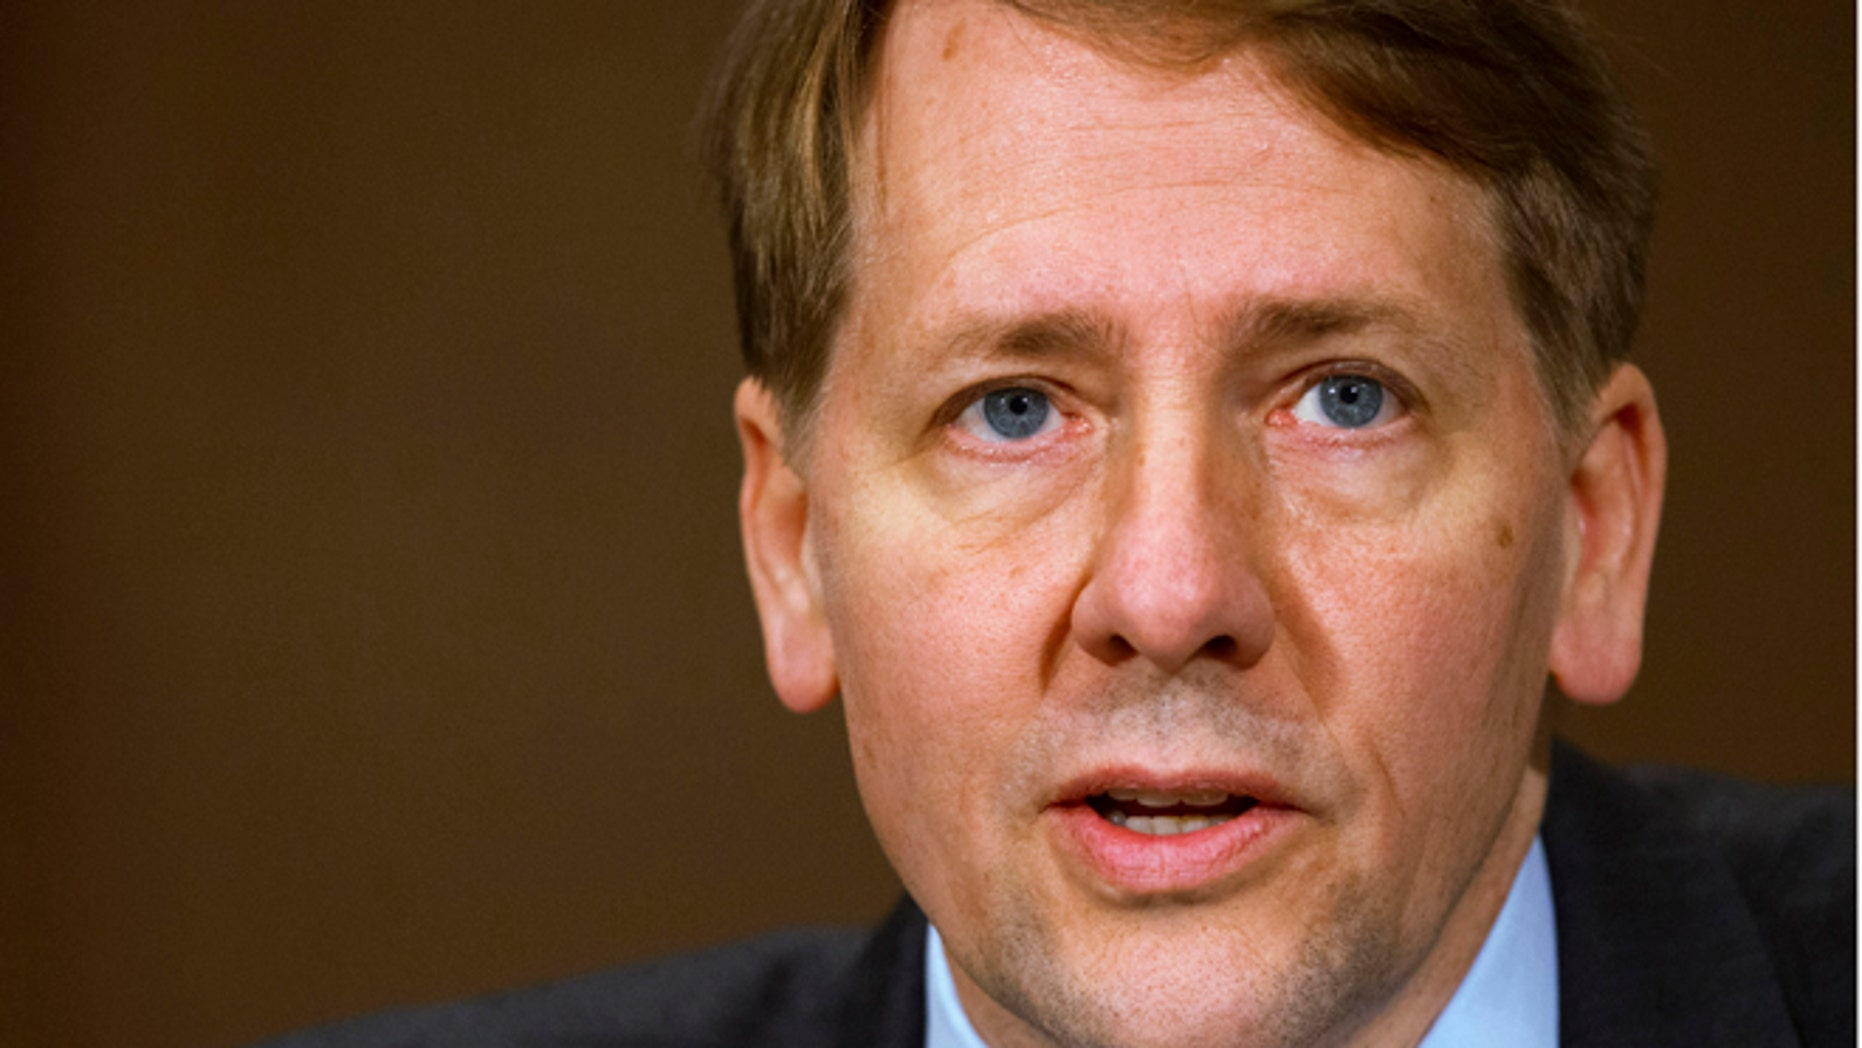 Consumer Financial Protection Bureau Director Richard Cordray testifies before a Senate Committee on Banking hearing on Capitol Hill in Washington.